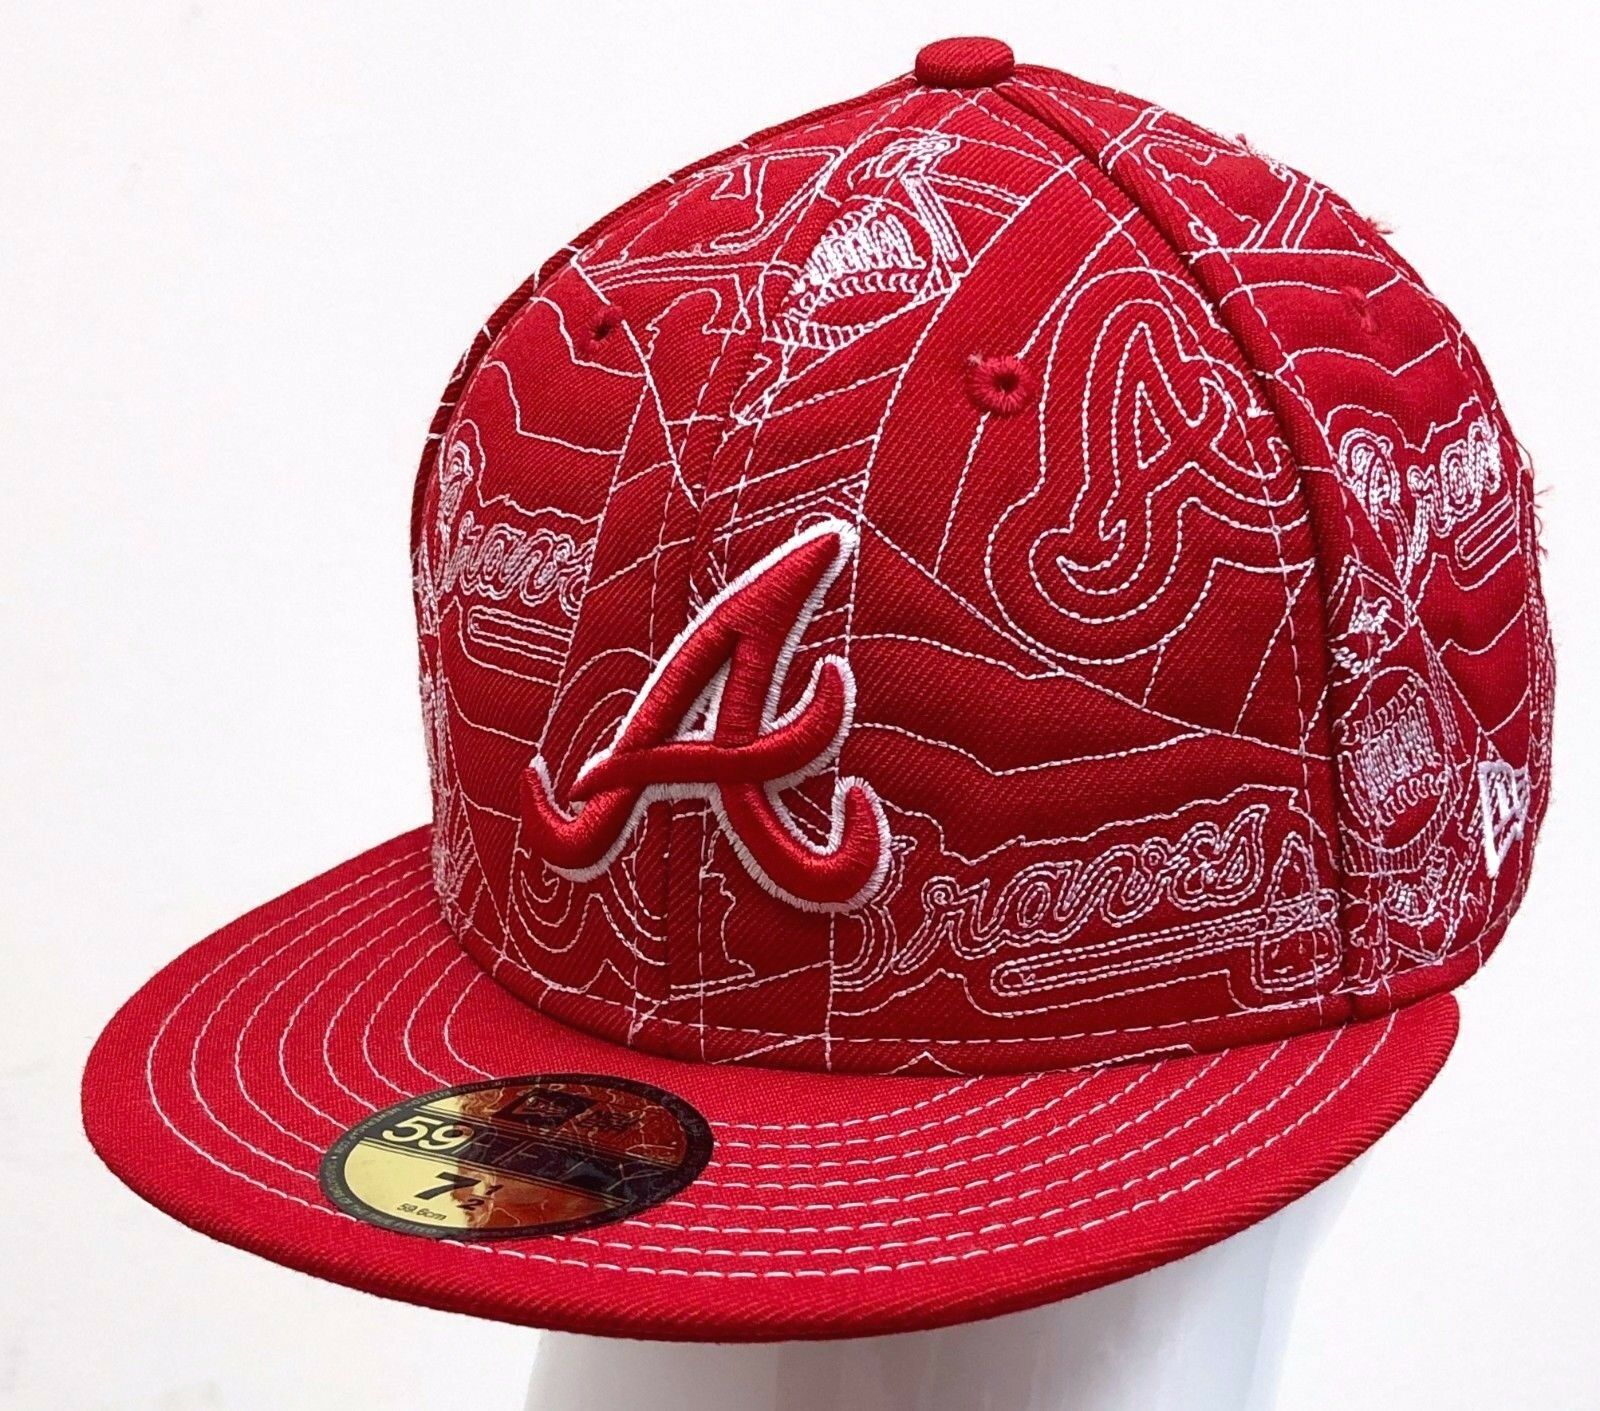 online store c6337 c9365 ... clearance new braves era 59fifty puffy atlanta braves new red white  612bd5 8b6a5 9c2fb